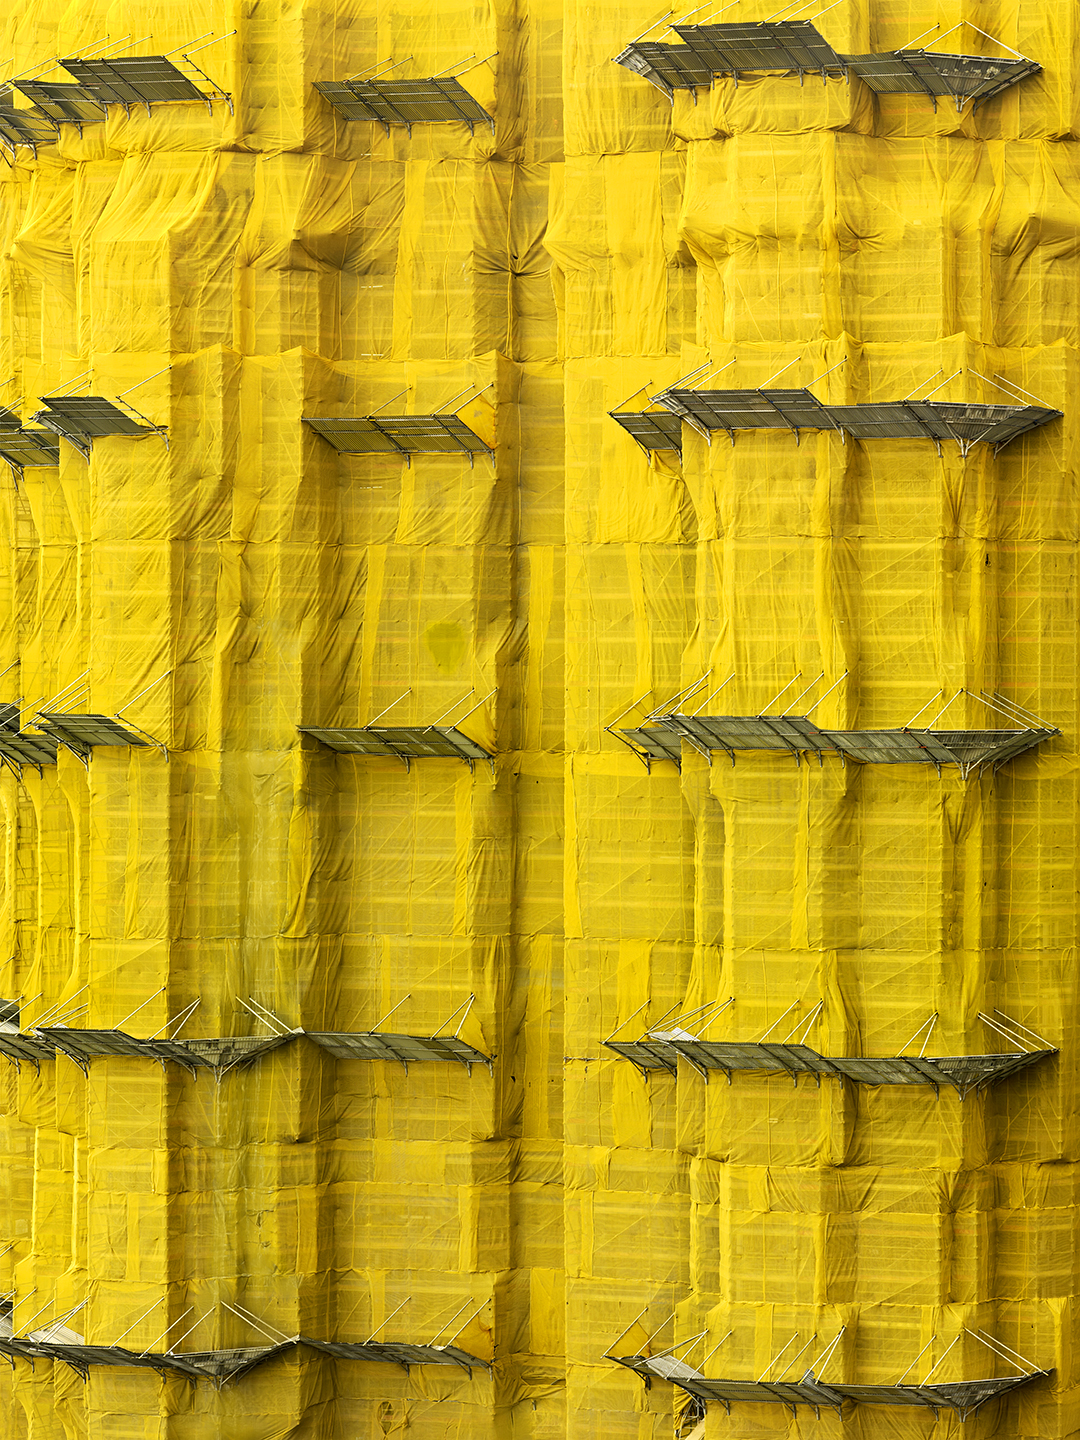 Yellow Cocoon #7, Hong Kong - 2011